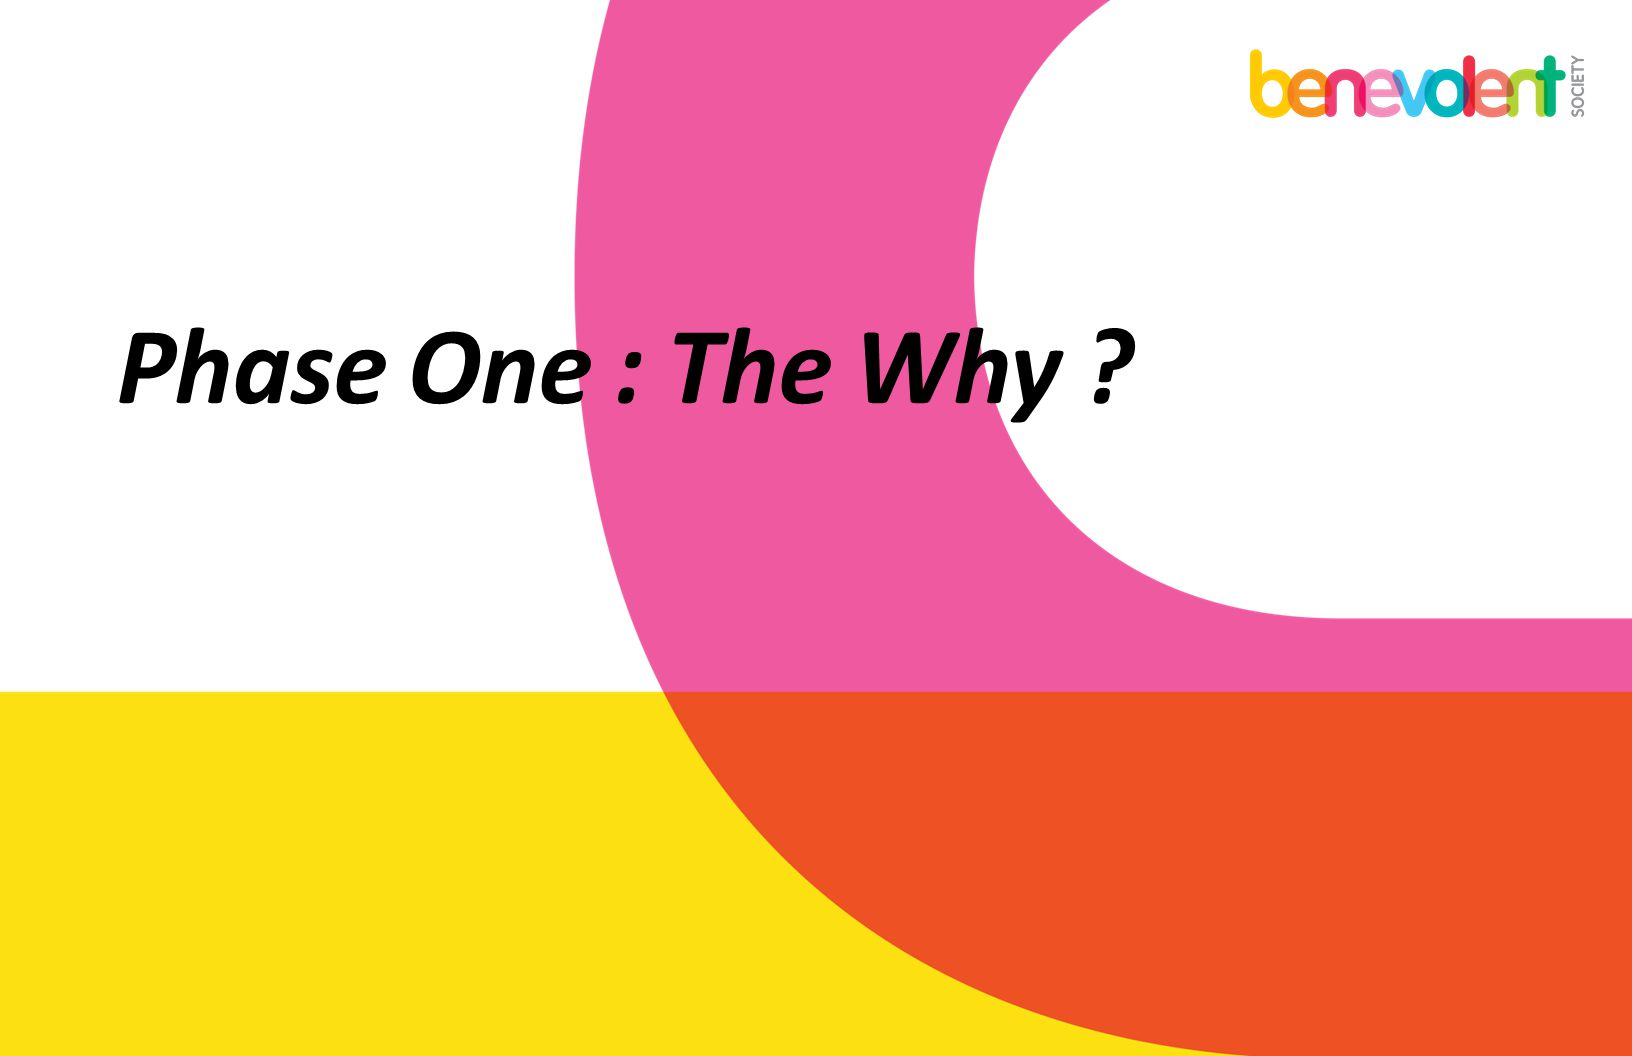 Phase One : The Why ?